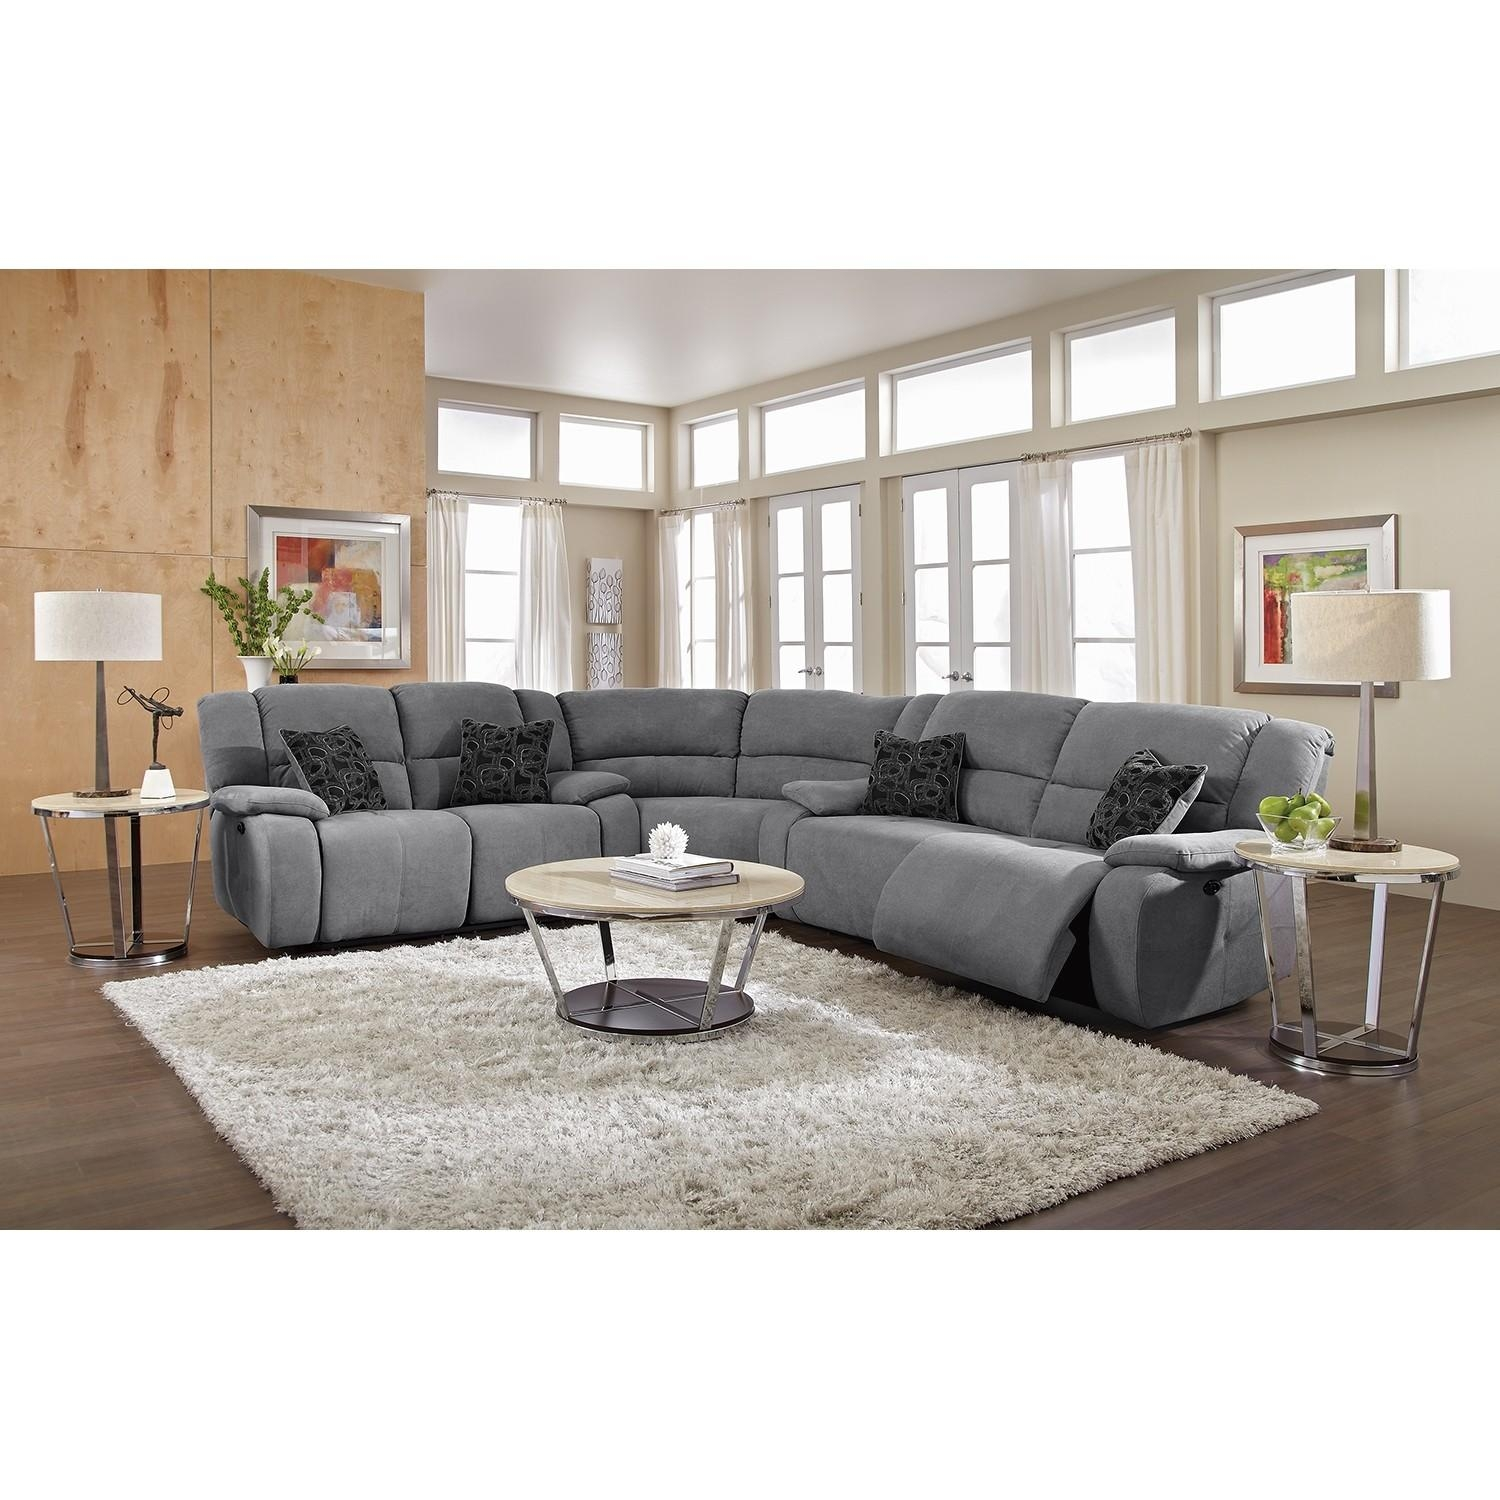 Living Room: Amazing Winsome Curved Sectional For Beautiful Living Regarding Curved Sectional Sofas With Recliner (Image 12 of 20)